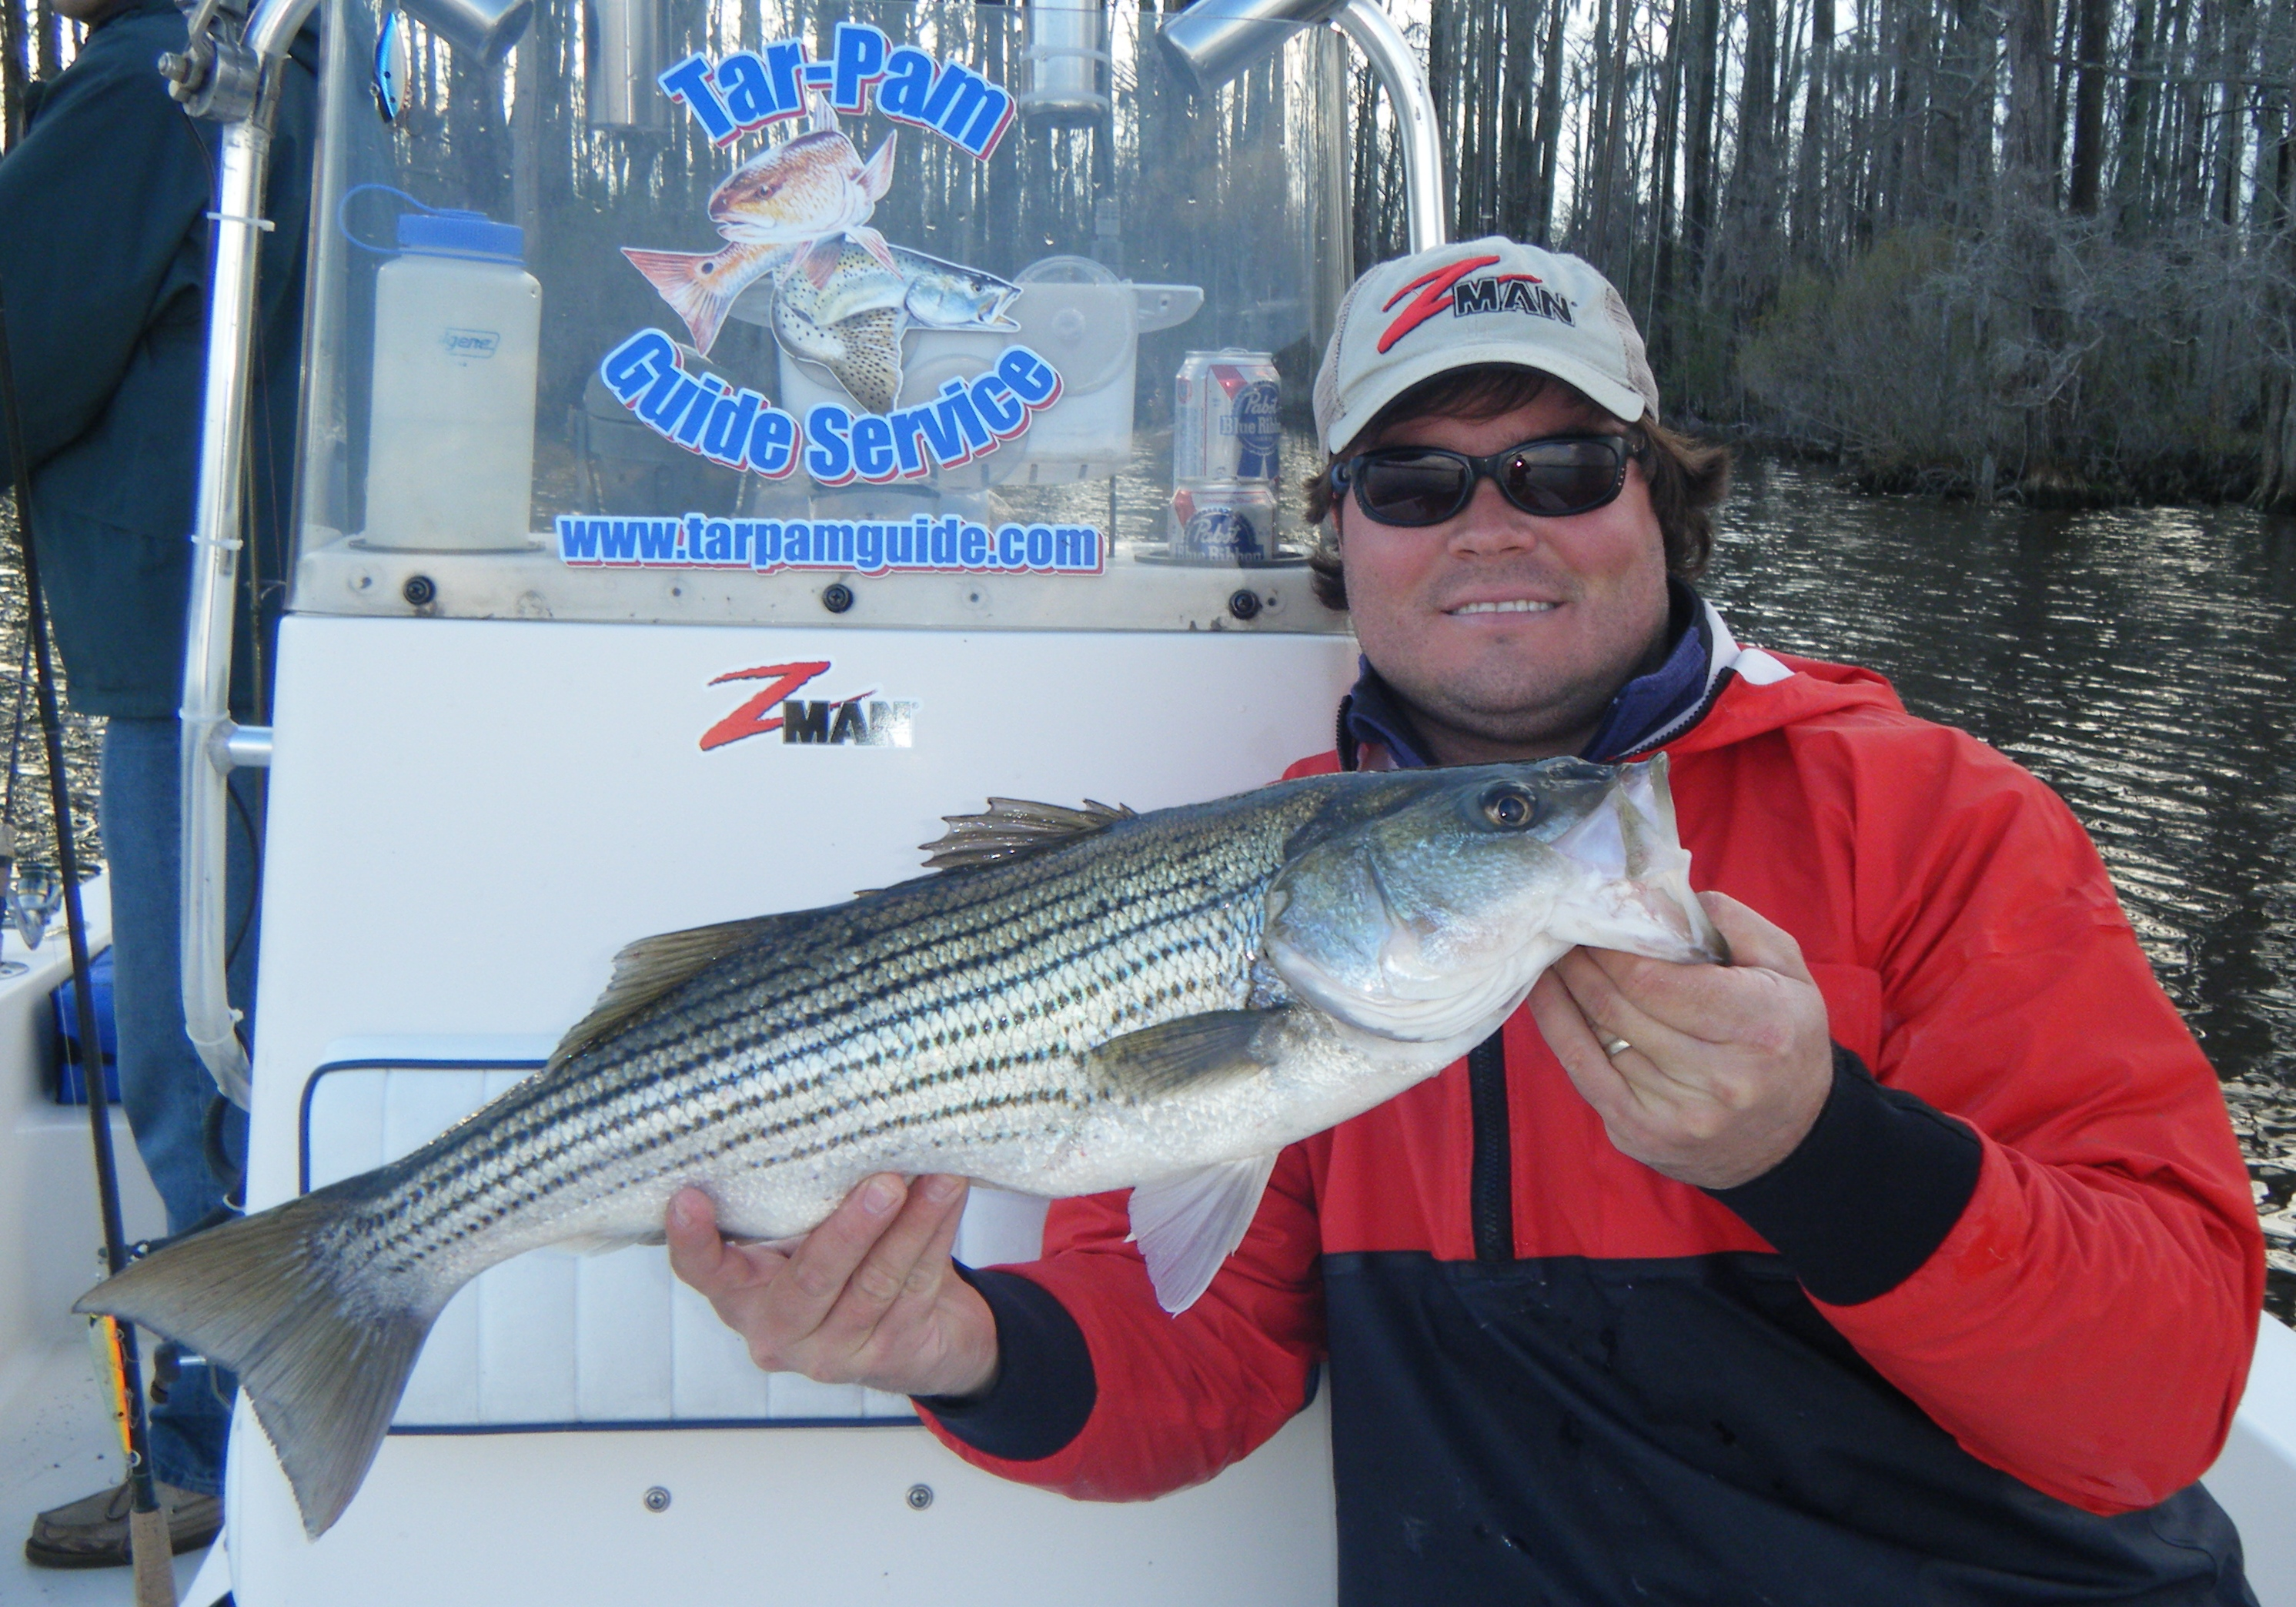 capt-richard-andrews-with-a-25-inch-pamlico-river-topwater-striper-caught-near-downtown-washington-copy